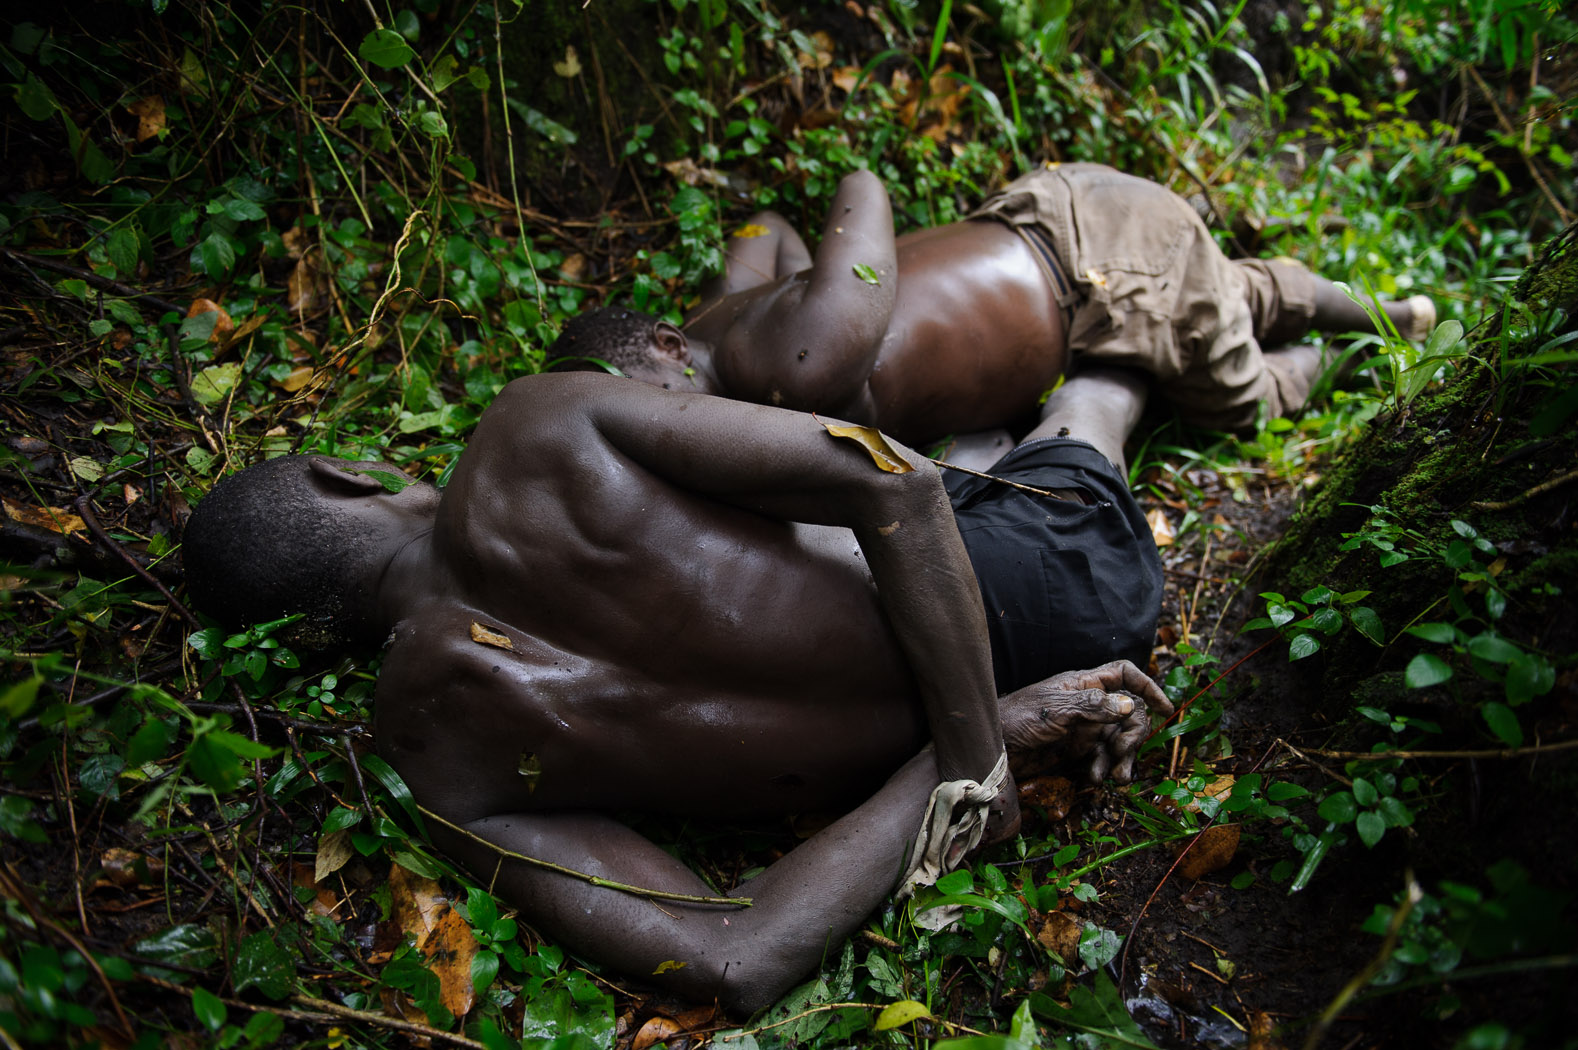 Throughout the rebel campaign, both sides (M23 and FARDC, the Congolese national army) have been accused of human rights abuses. According to rebels, these two men were allegedly massacred by retreating FARDC forces.